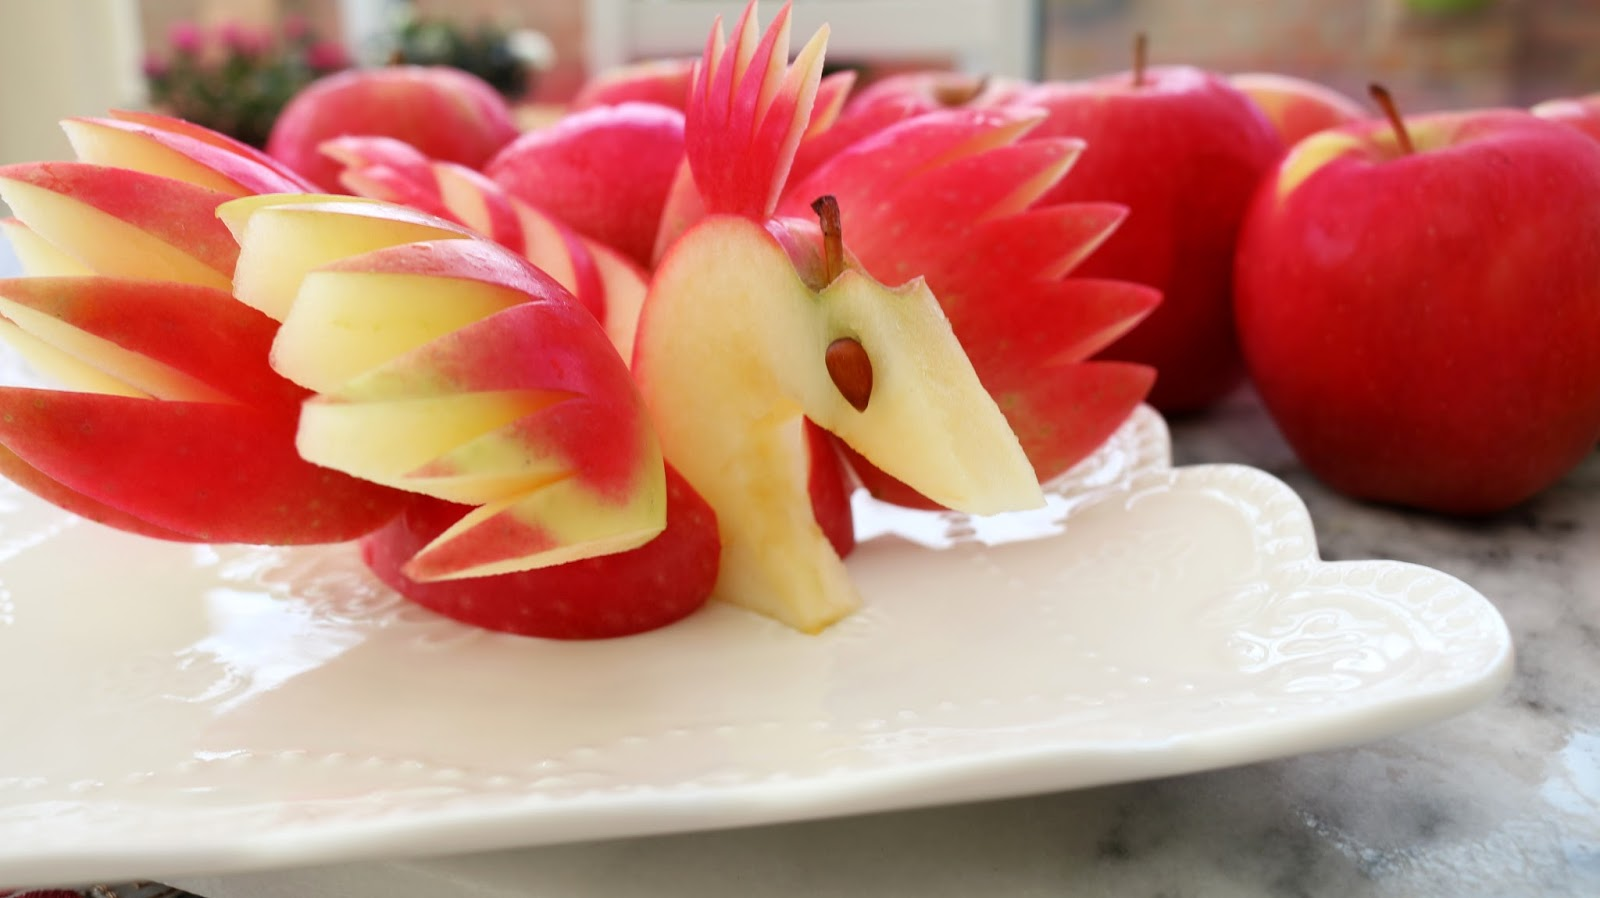 Italypaul art in fruit vegetable carving lessons how to make